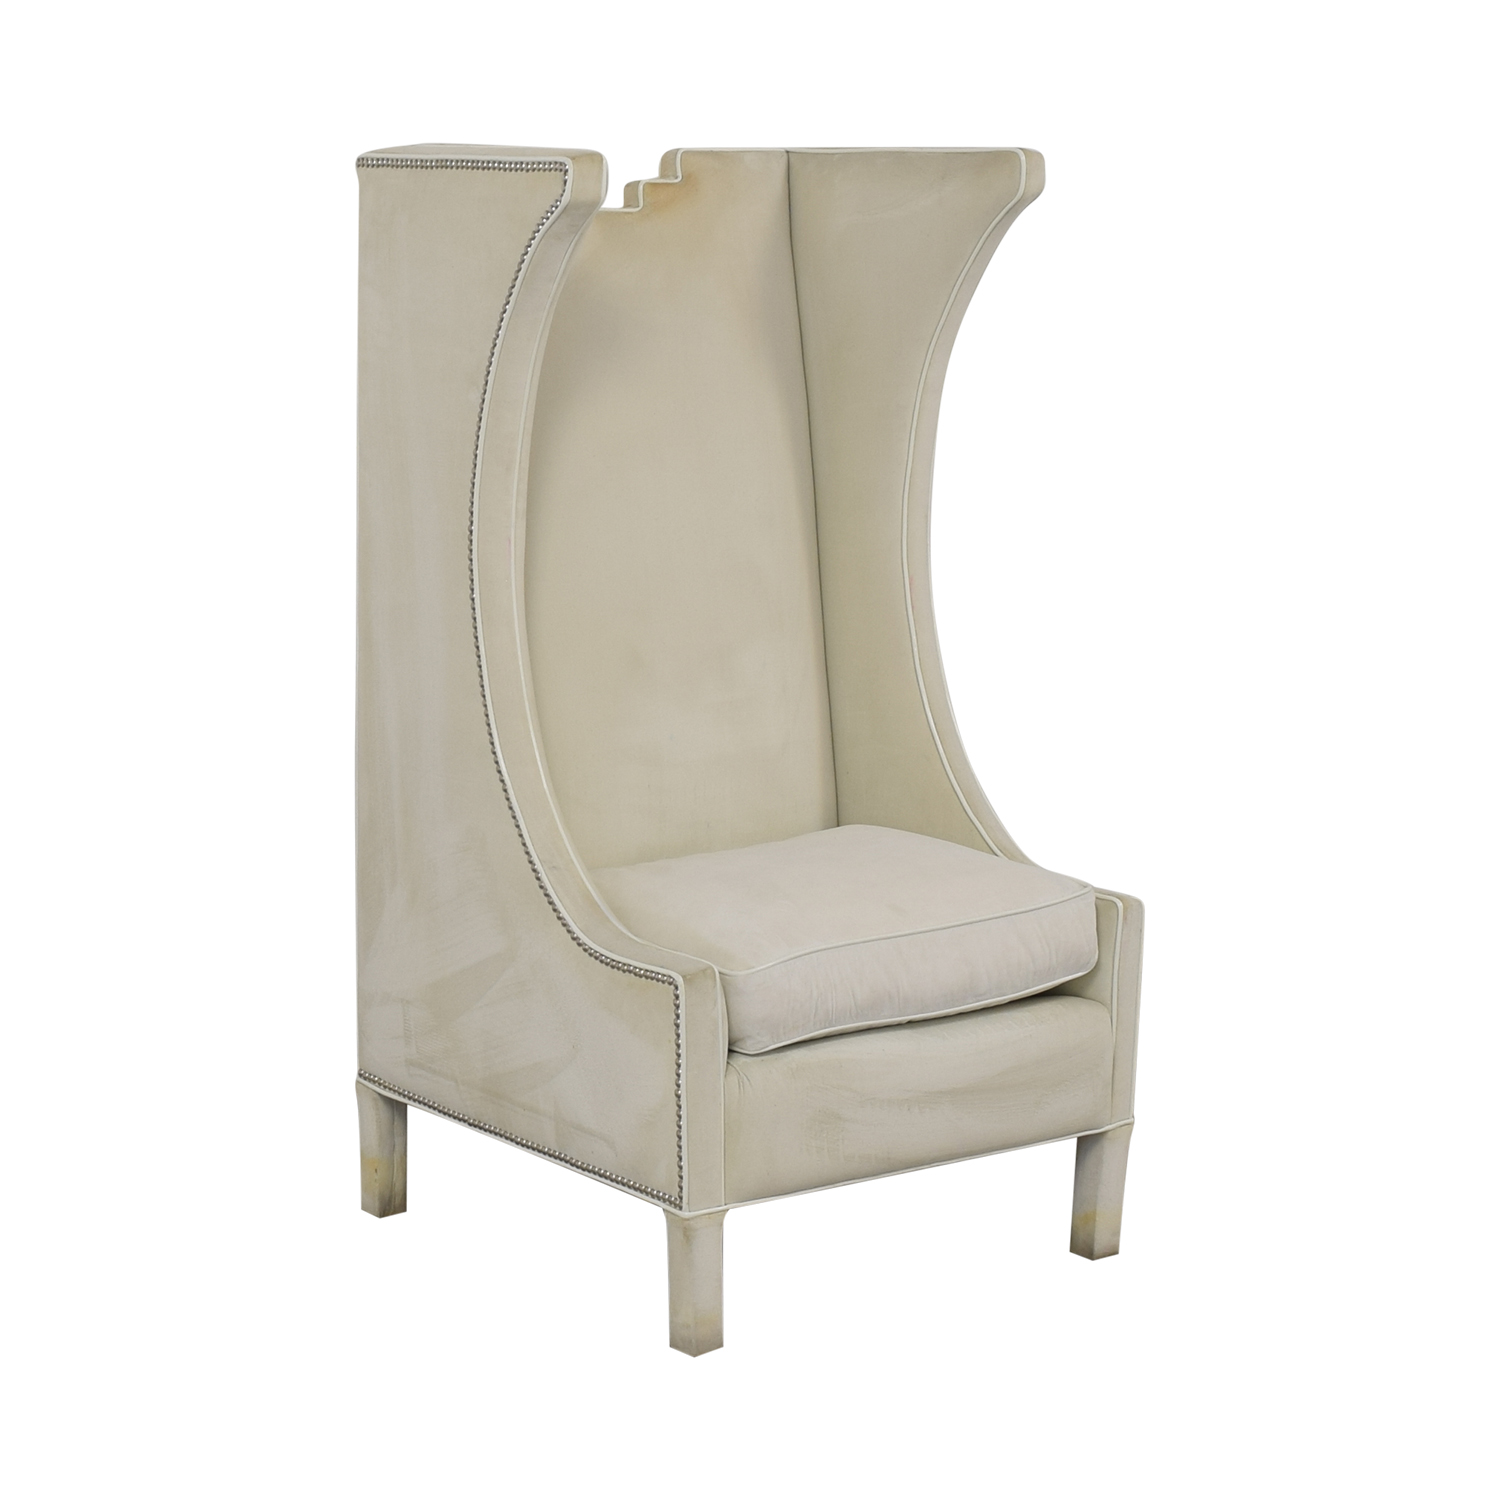 Shine by S.H.O Shine by S.H.O. Lolita High Chair Cotton Velvet and Leather Piping for sale